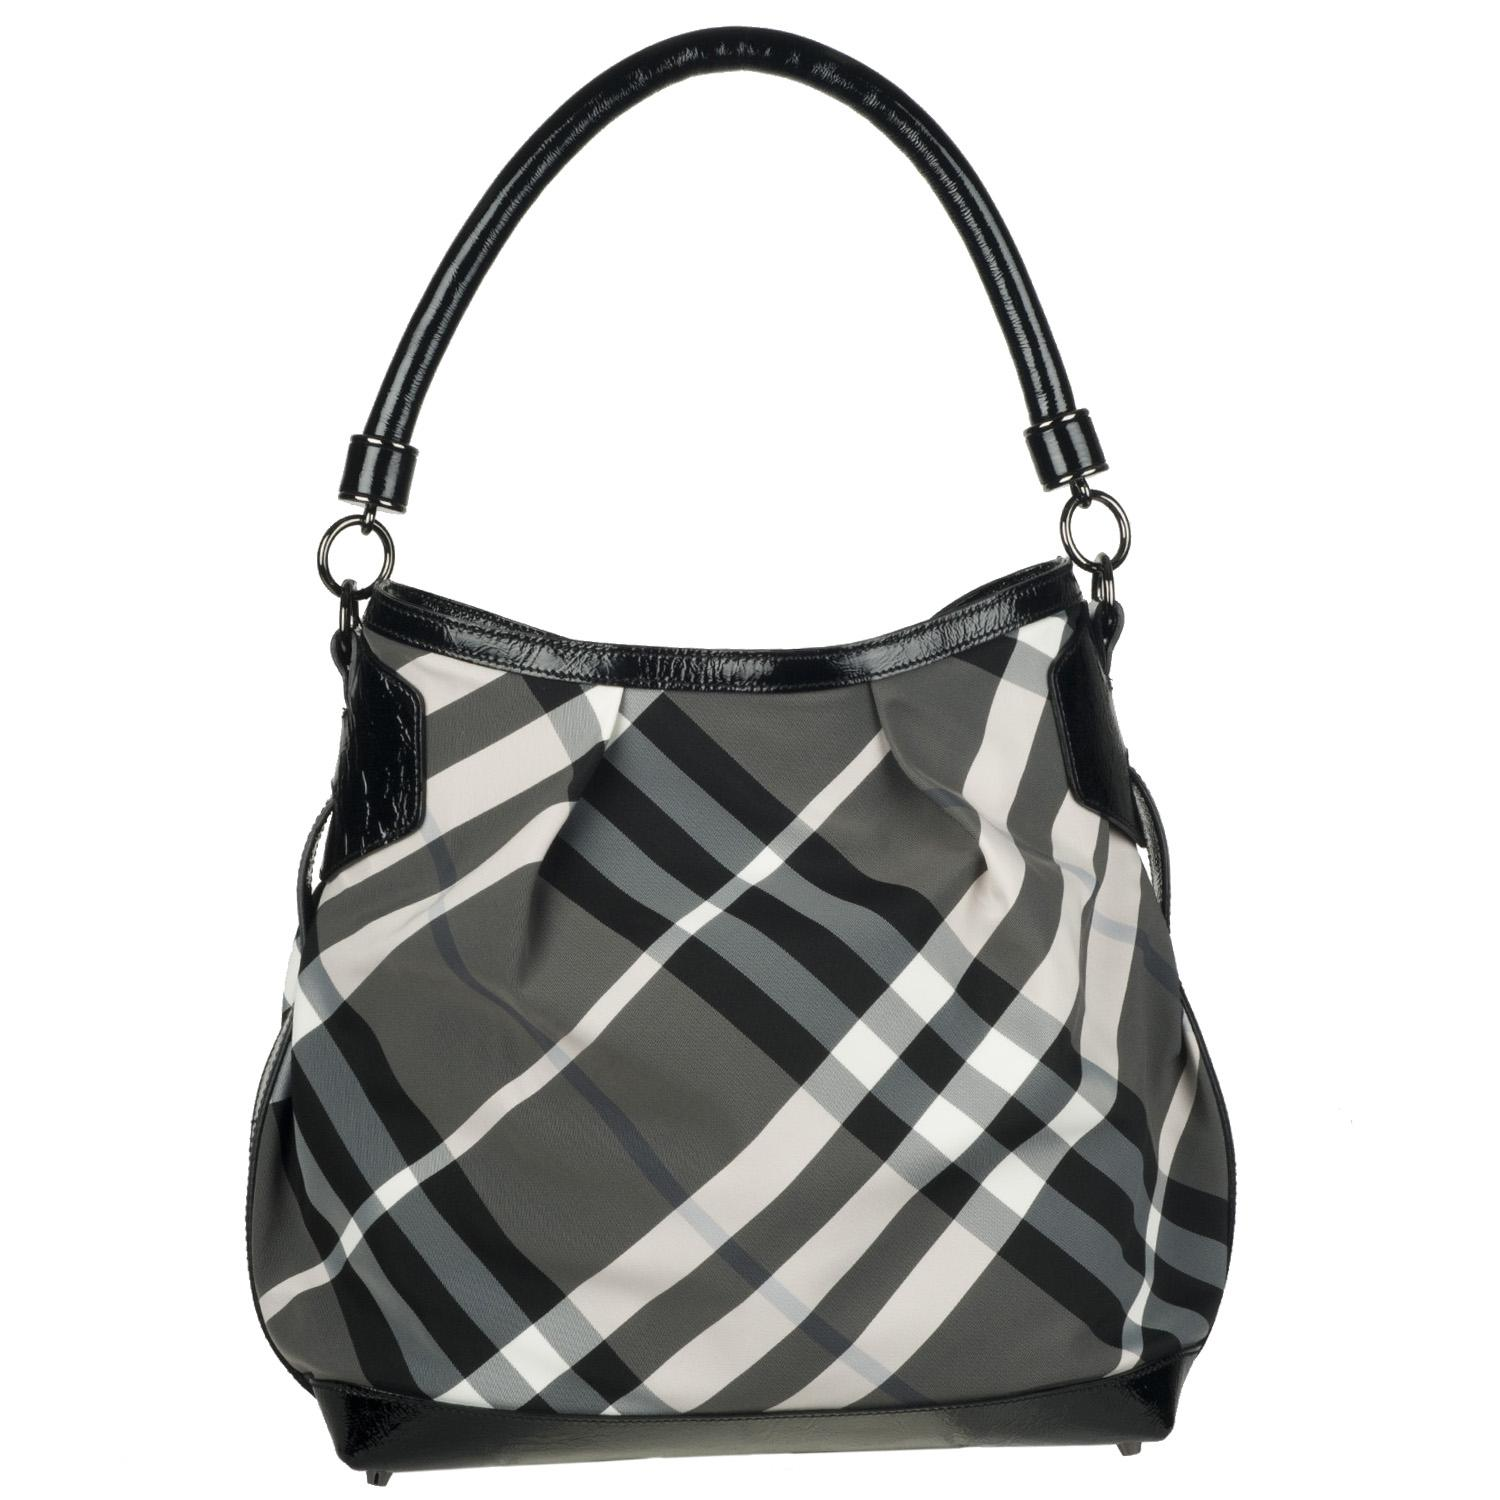 Burberry Black Nylon Check Print Hobo Bag Free Shipping